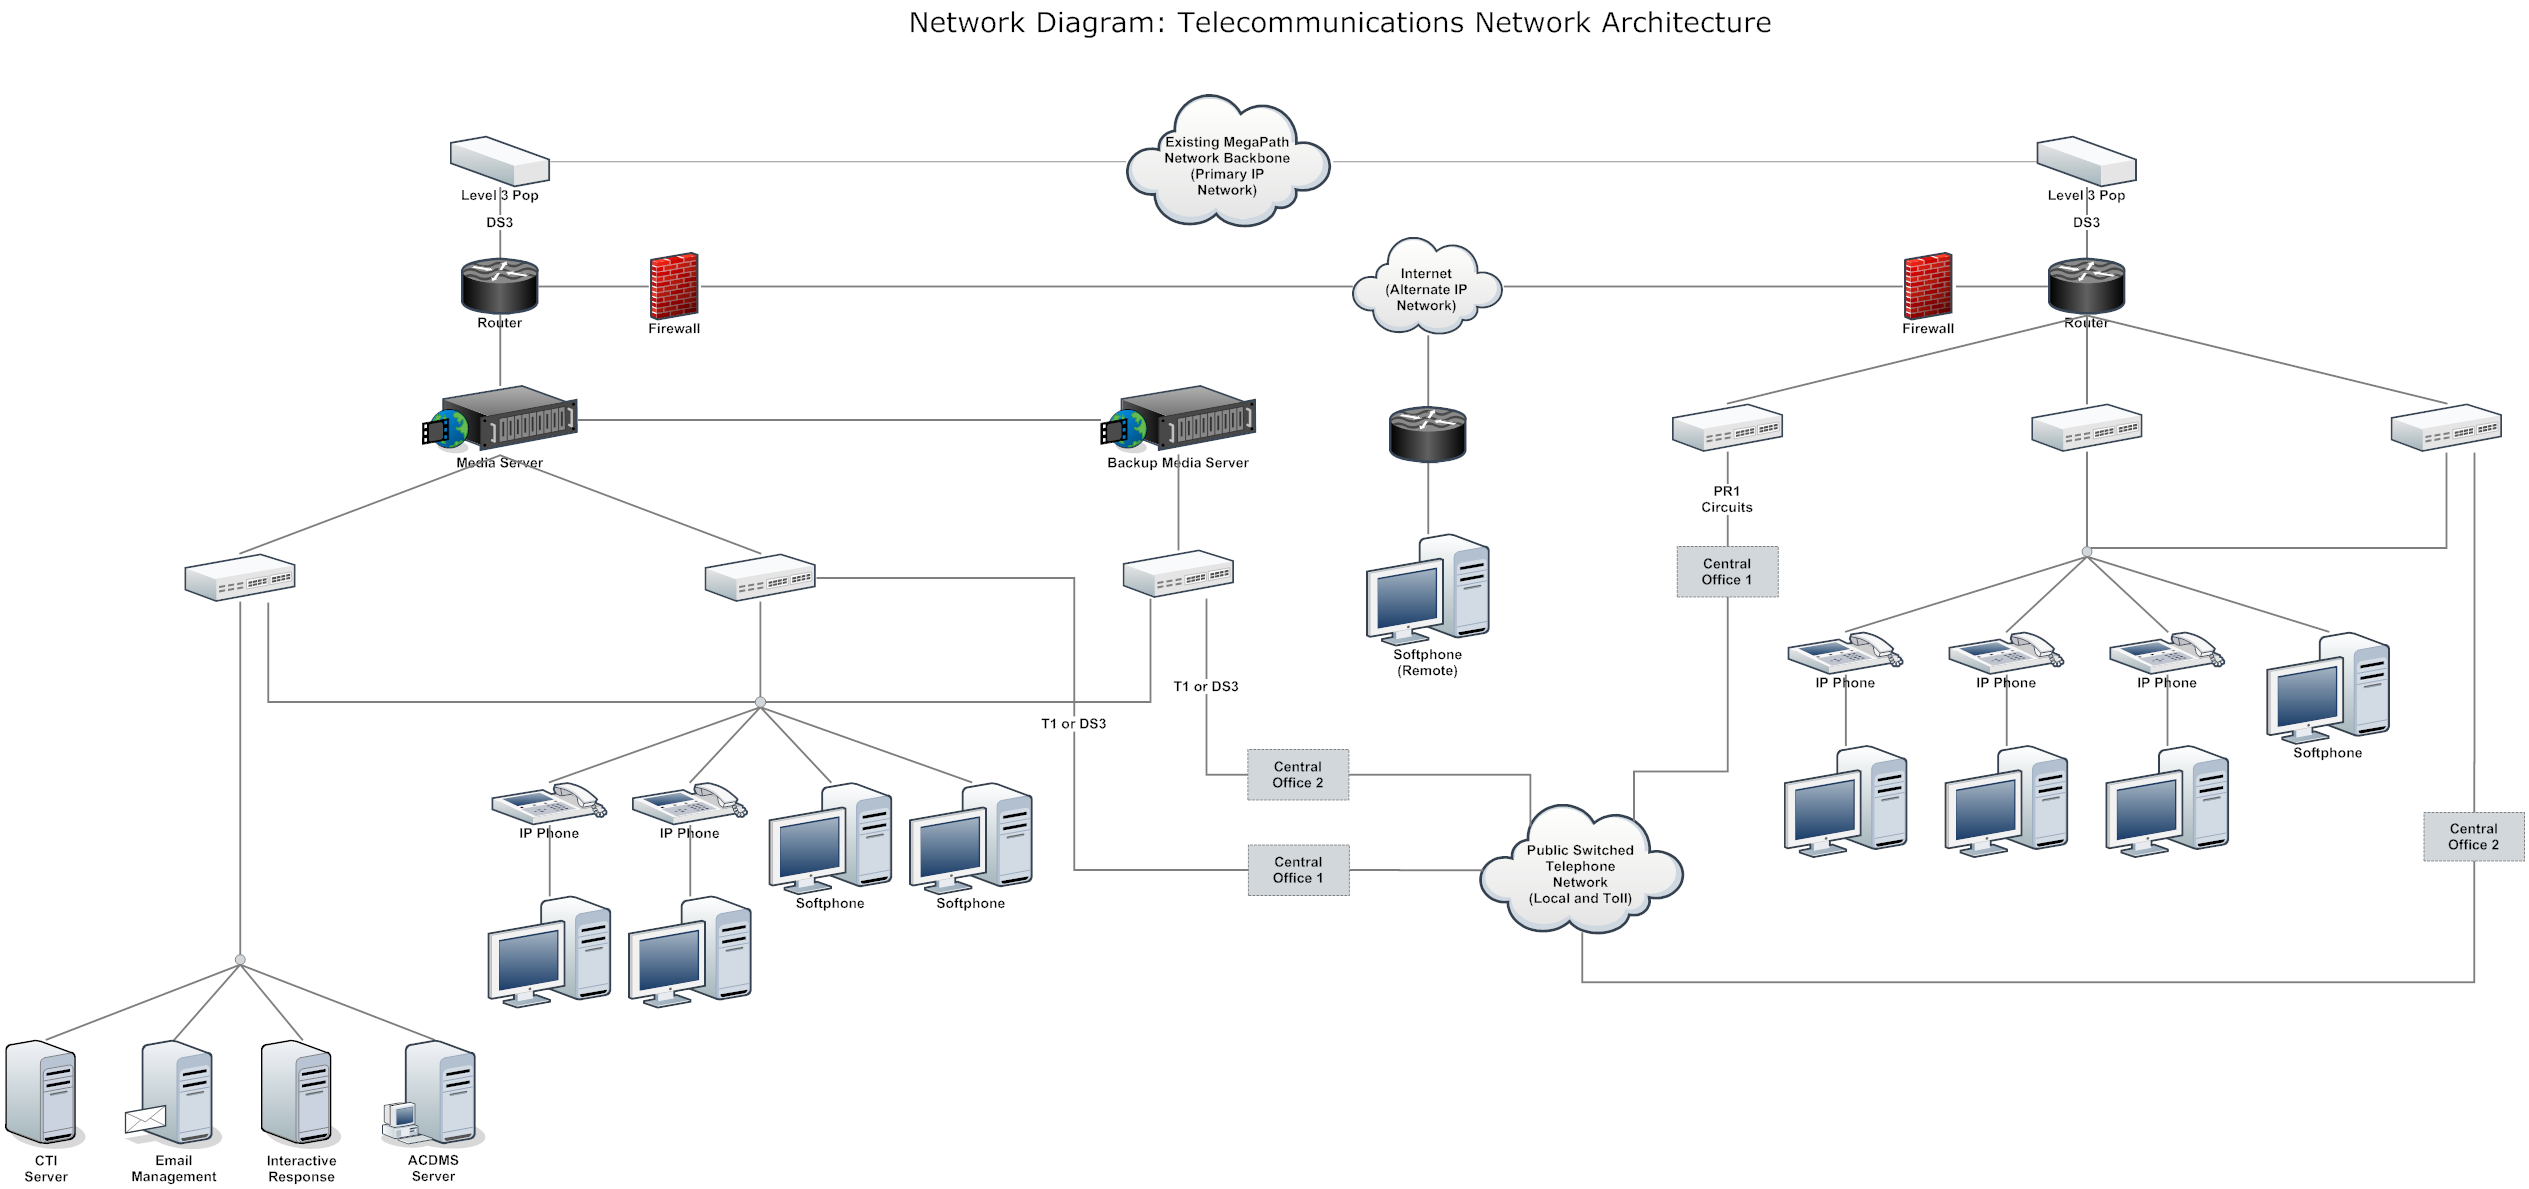 Network diagram example telecommunnications network architecture network diagrams Wired home network architecture